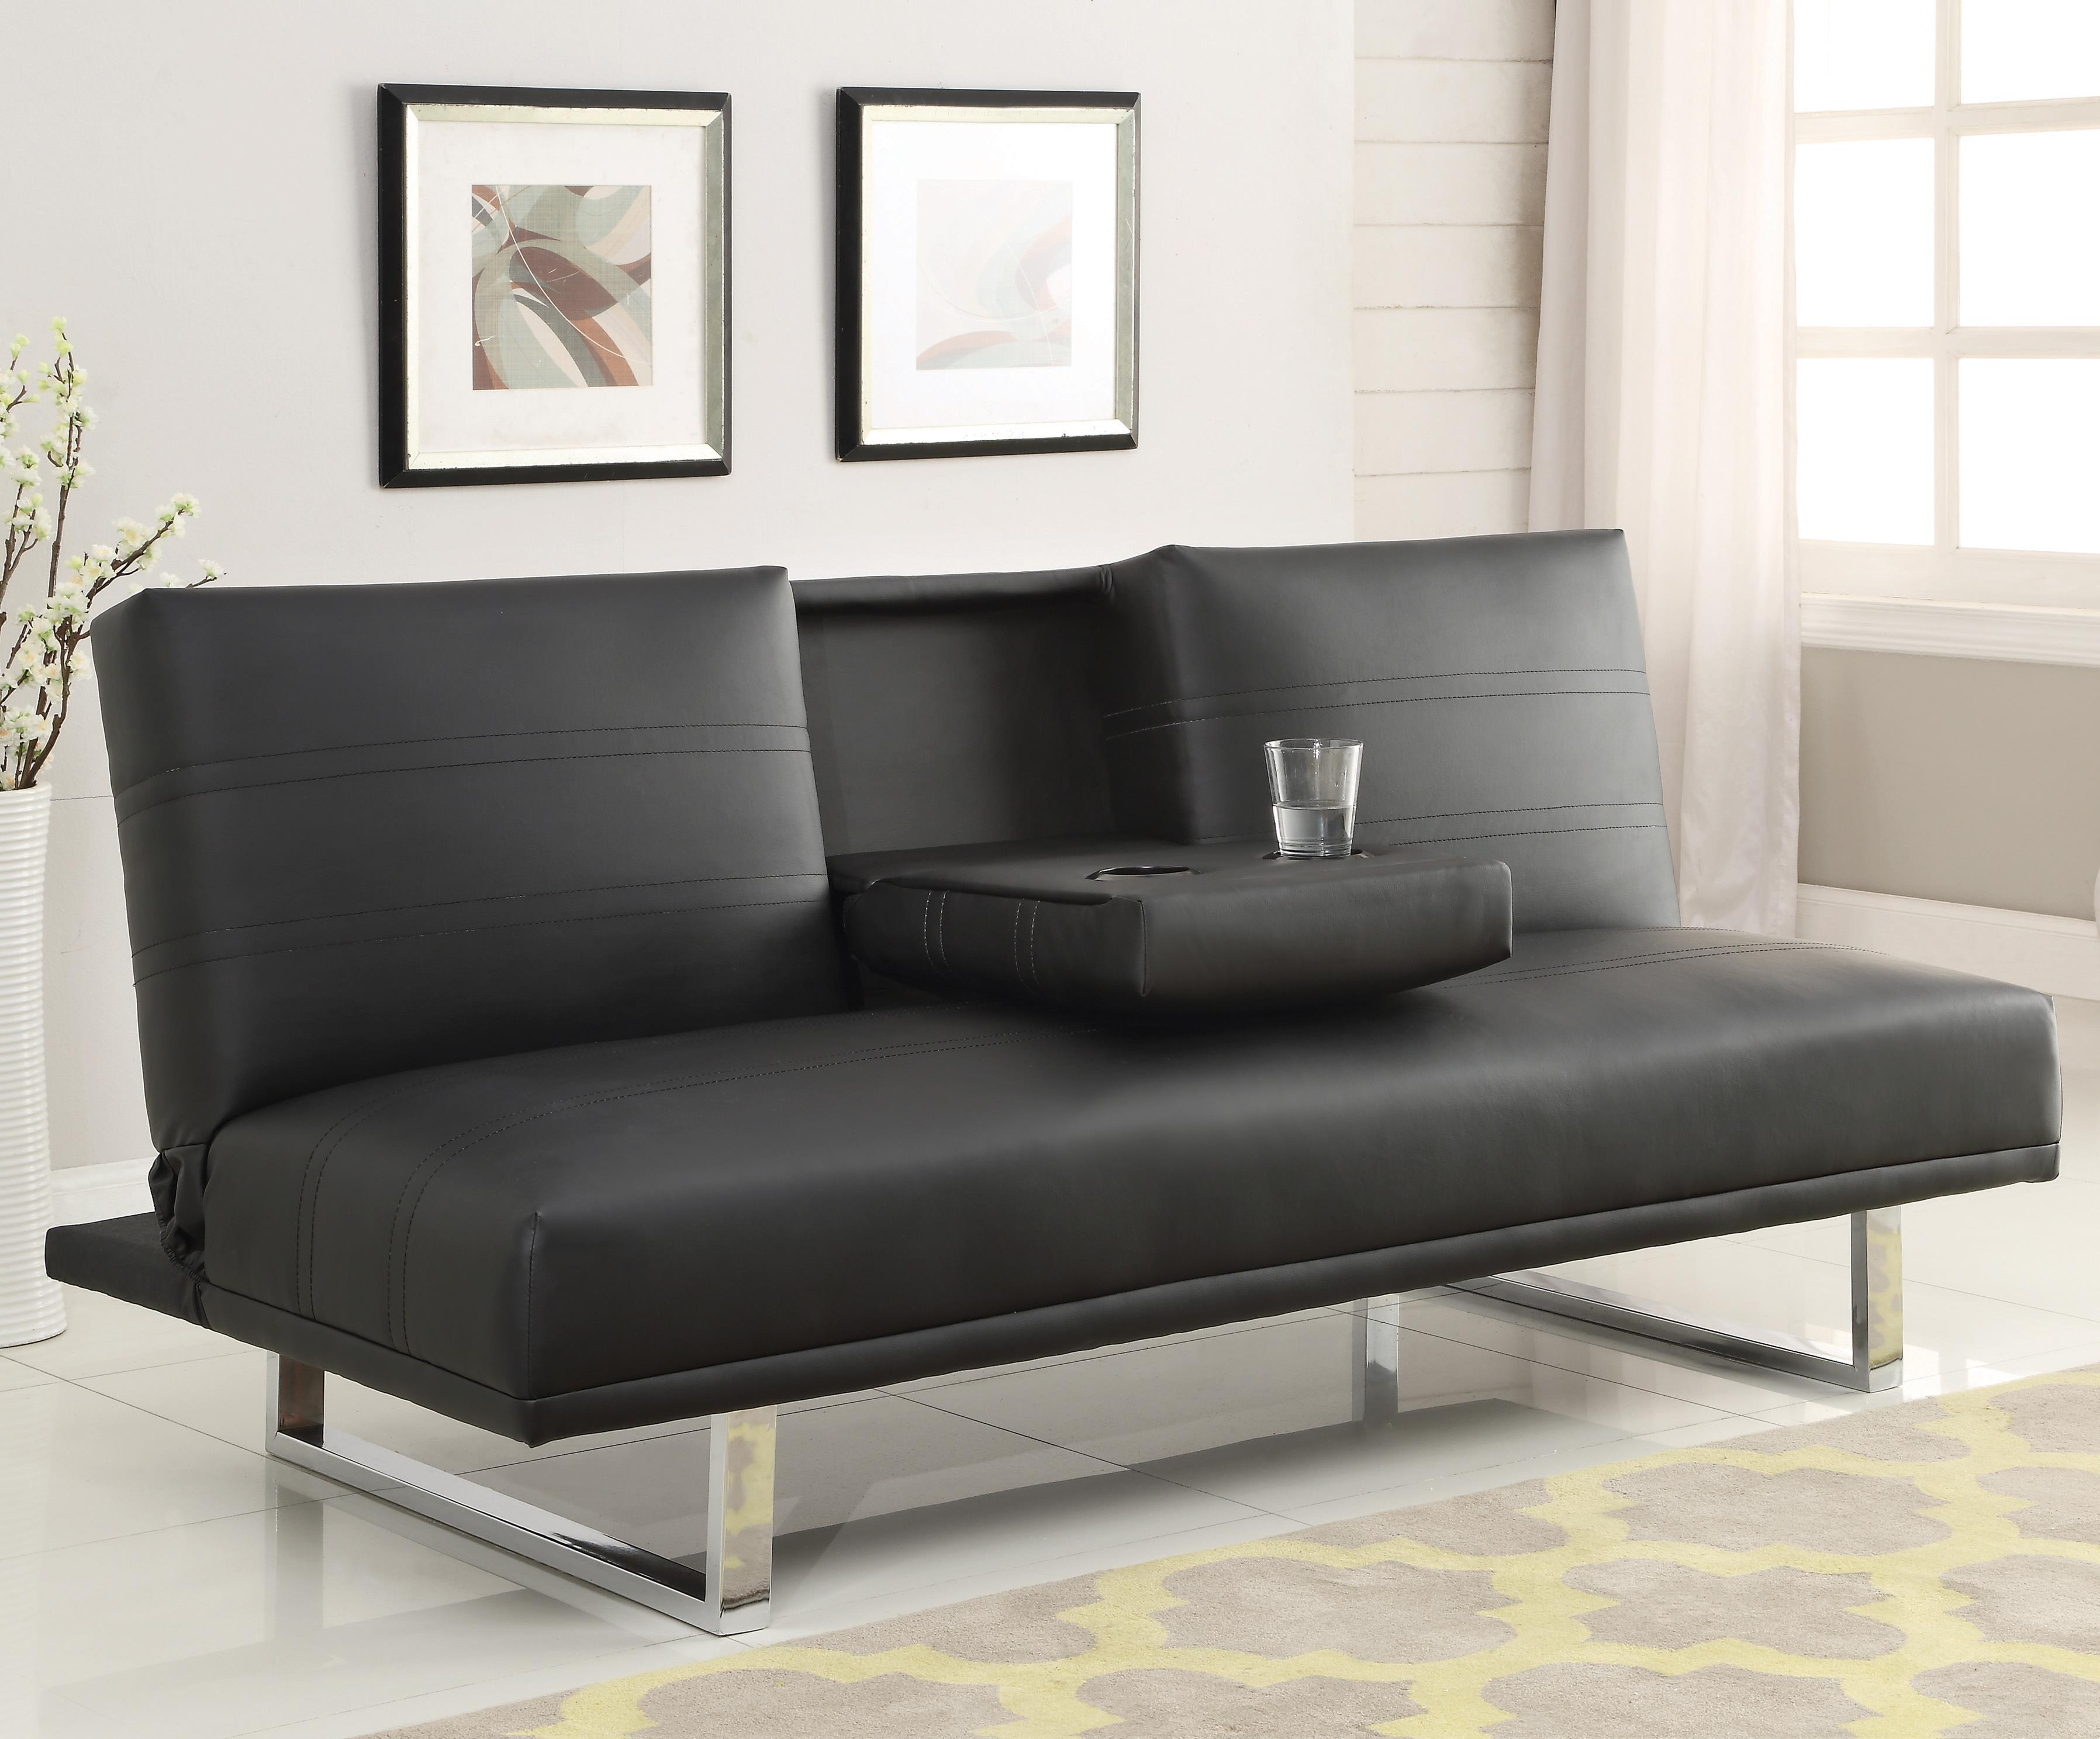 Sofa Beds and Futons - Contemporary Sofa Bed with Chrome Legs